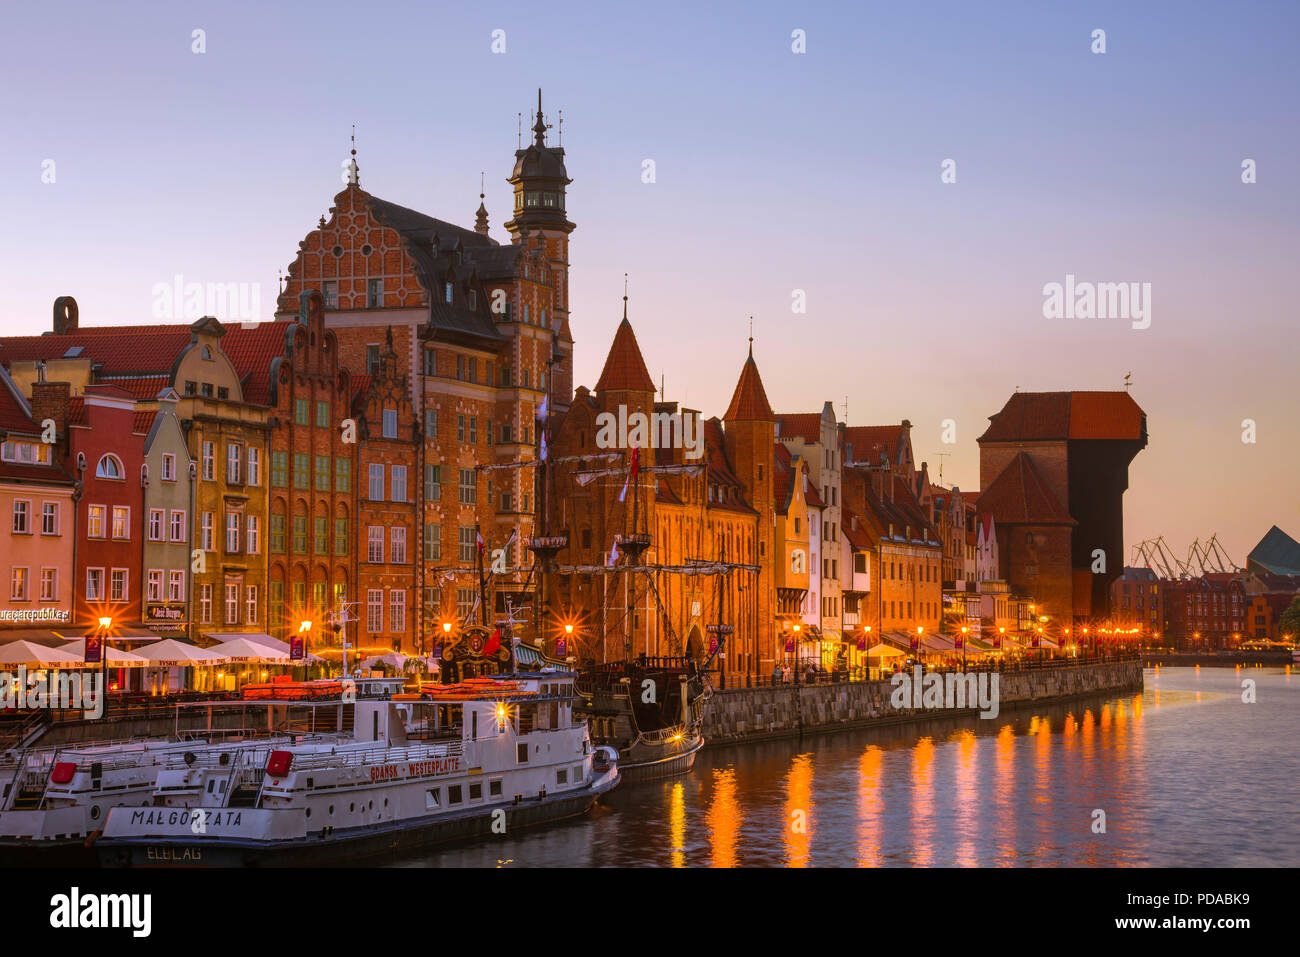 Poland Baltic old city port, view at dusk of the Old Town waterfront area in the center of Gdansk, Pomerania, Poland. Stock Photo